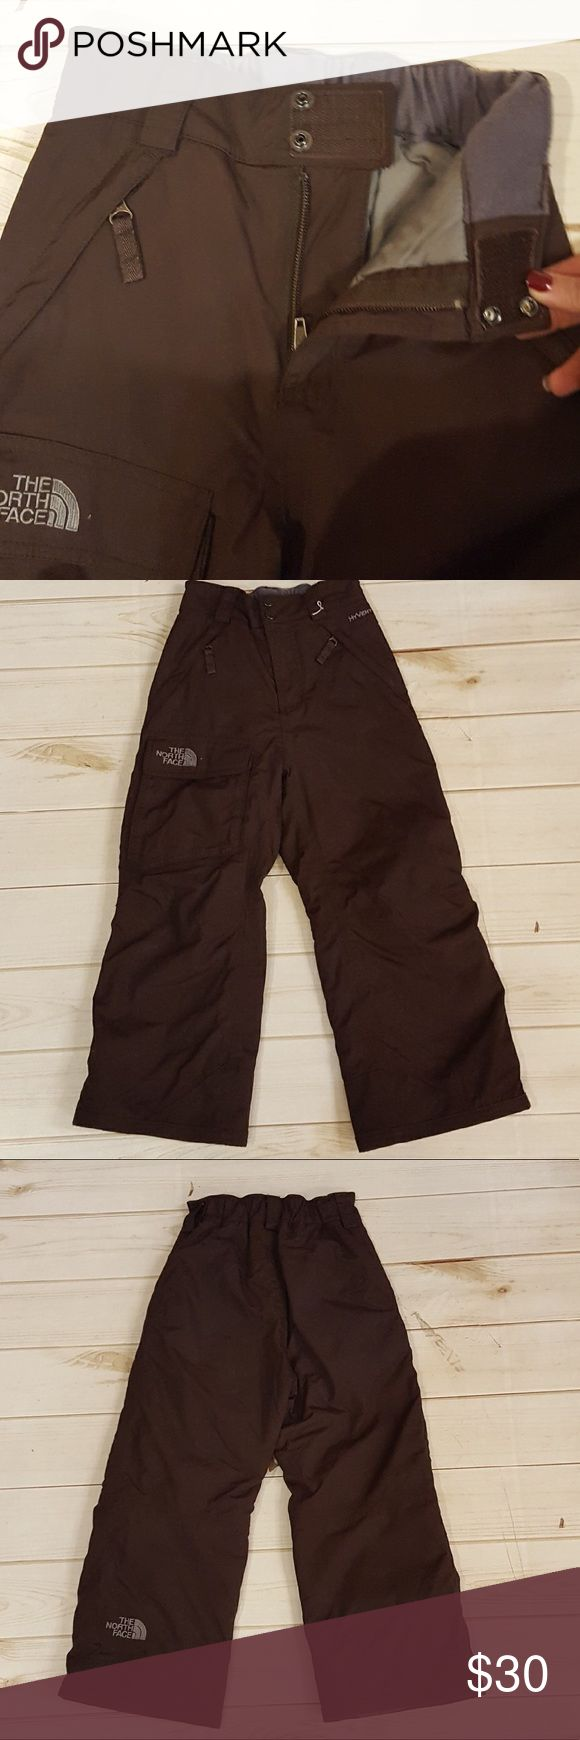 The North Face girls ski pants! Size x-small. Chocolate brown snow ski pants! Super warm and in good condition. The North Face Bottoms